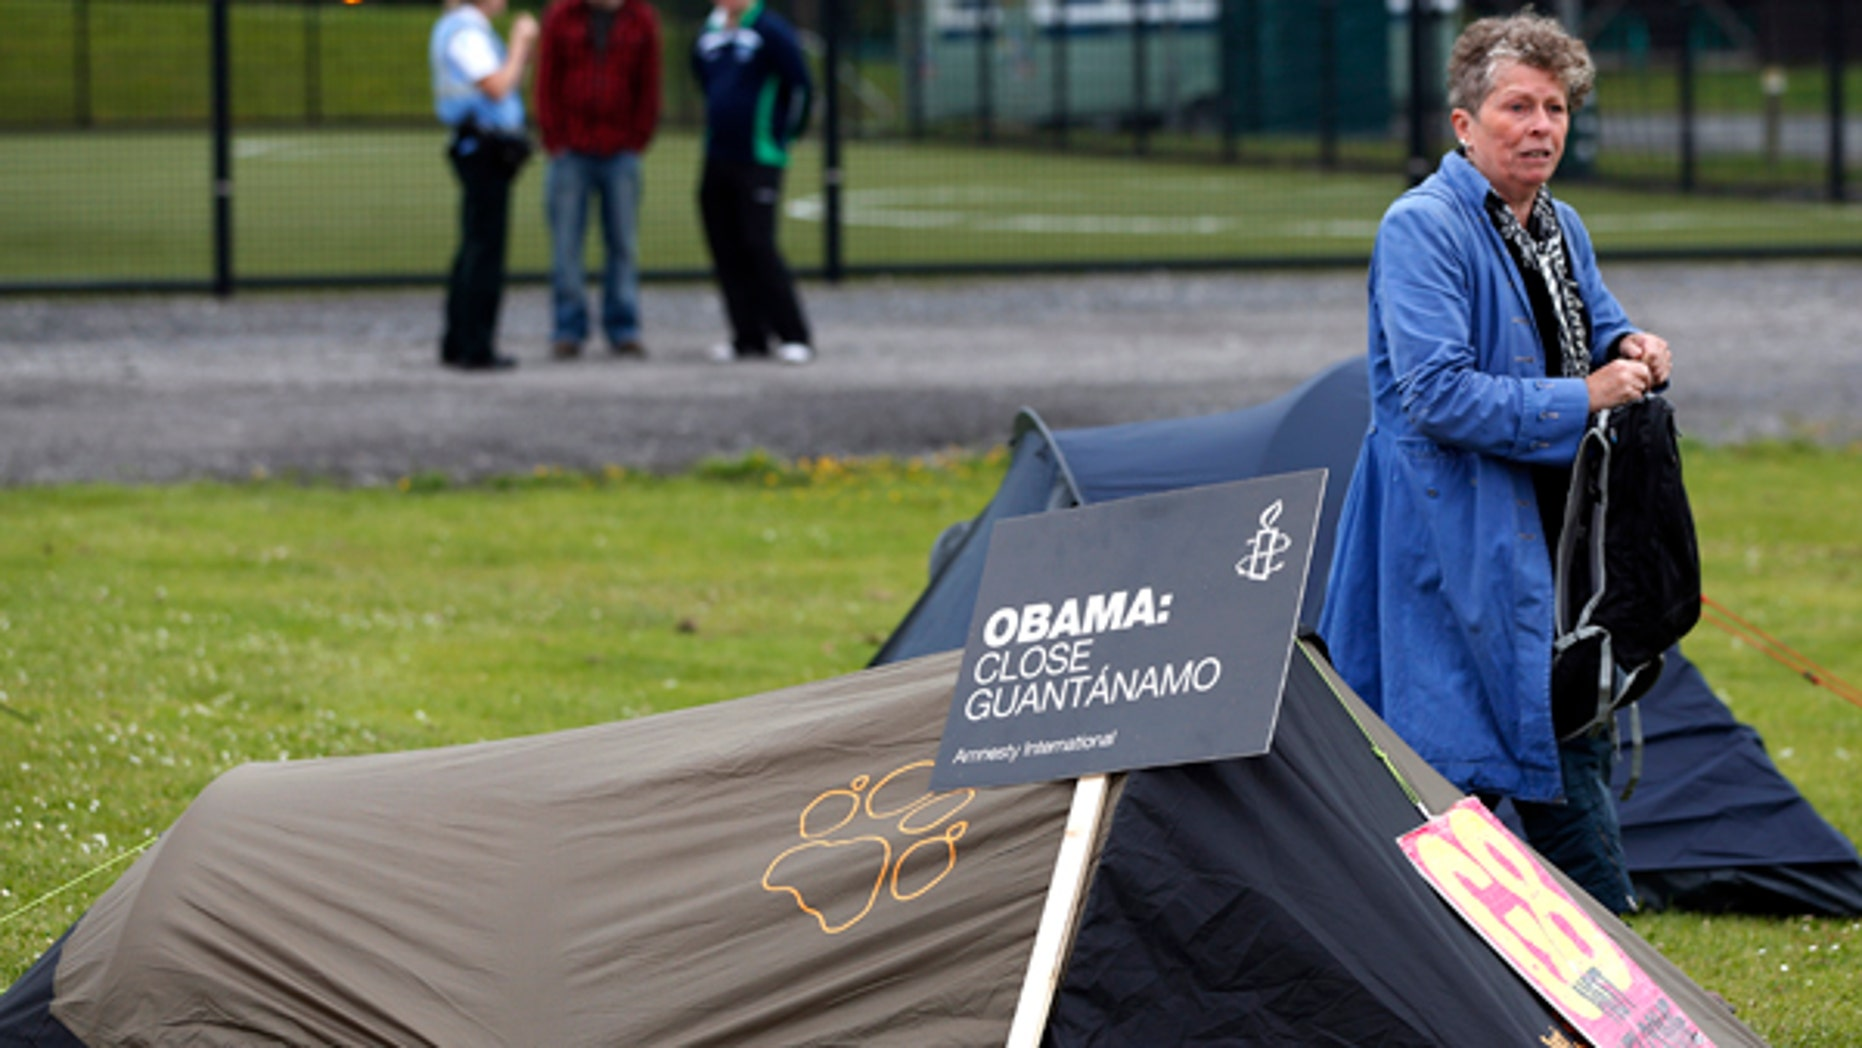 June 16, 2013: A woman walks between signs resting on the tents of demonstrators in a field outside of the G8 summit venue in Enniskillen, Northern Ireland. In a two-day meeting global leaders will discuss the economy and exchange views on foreign affairs and security issues.